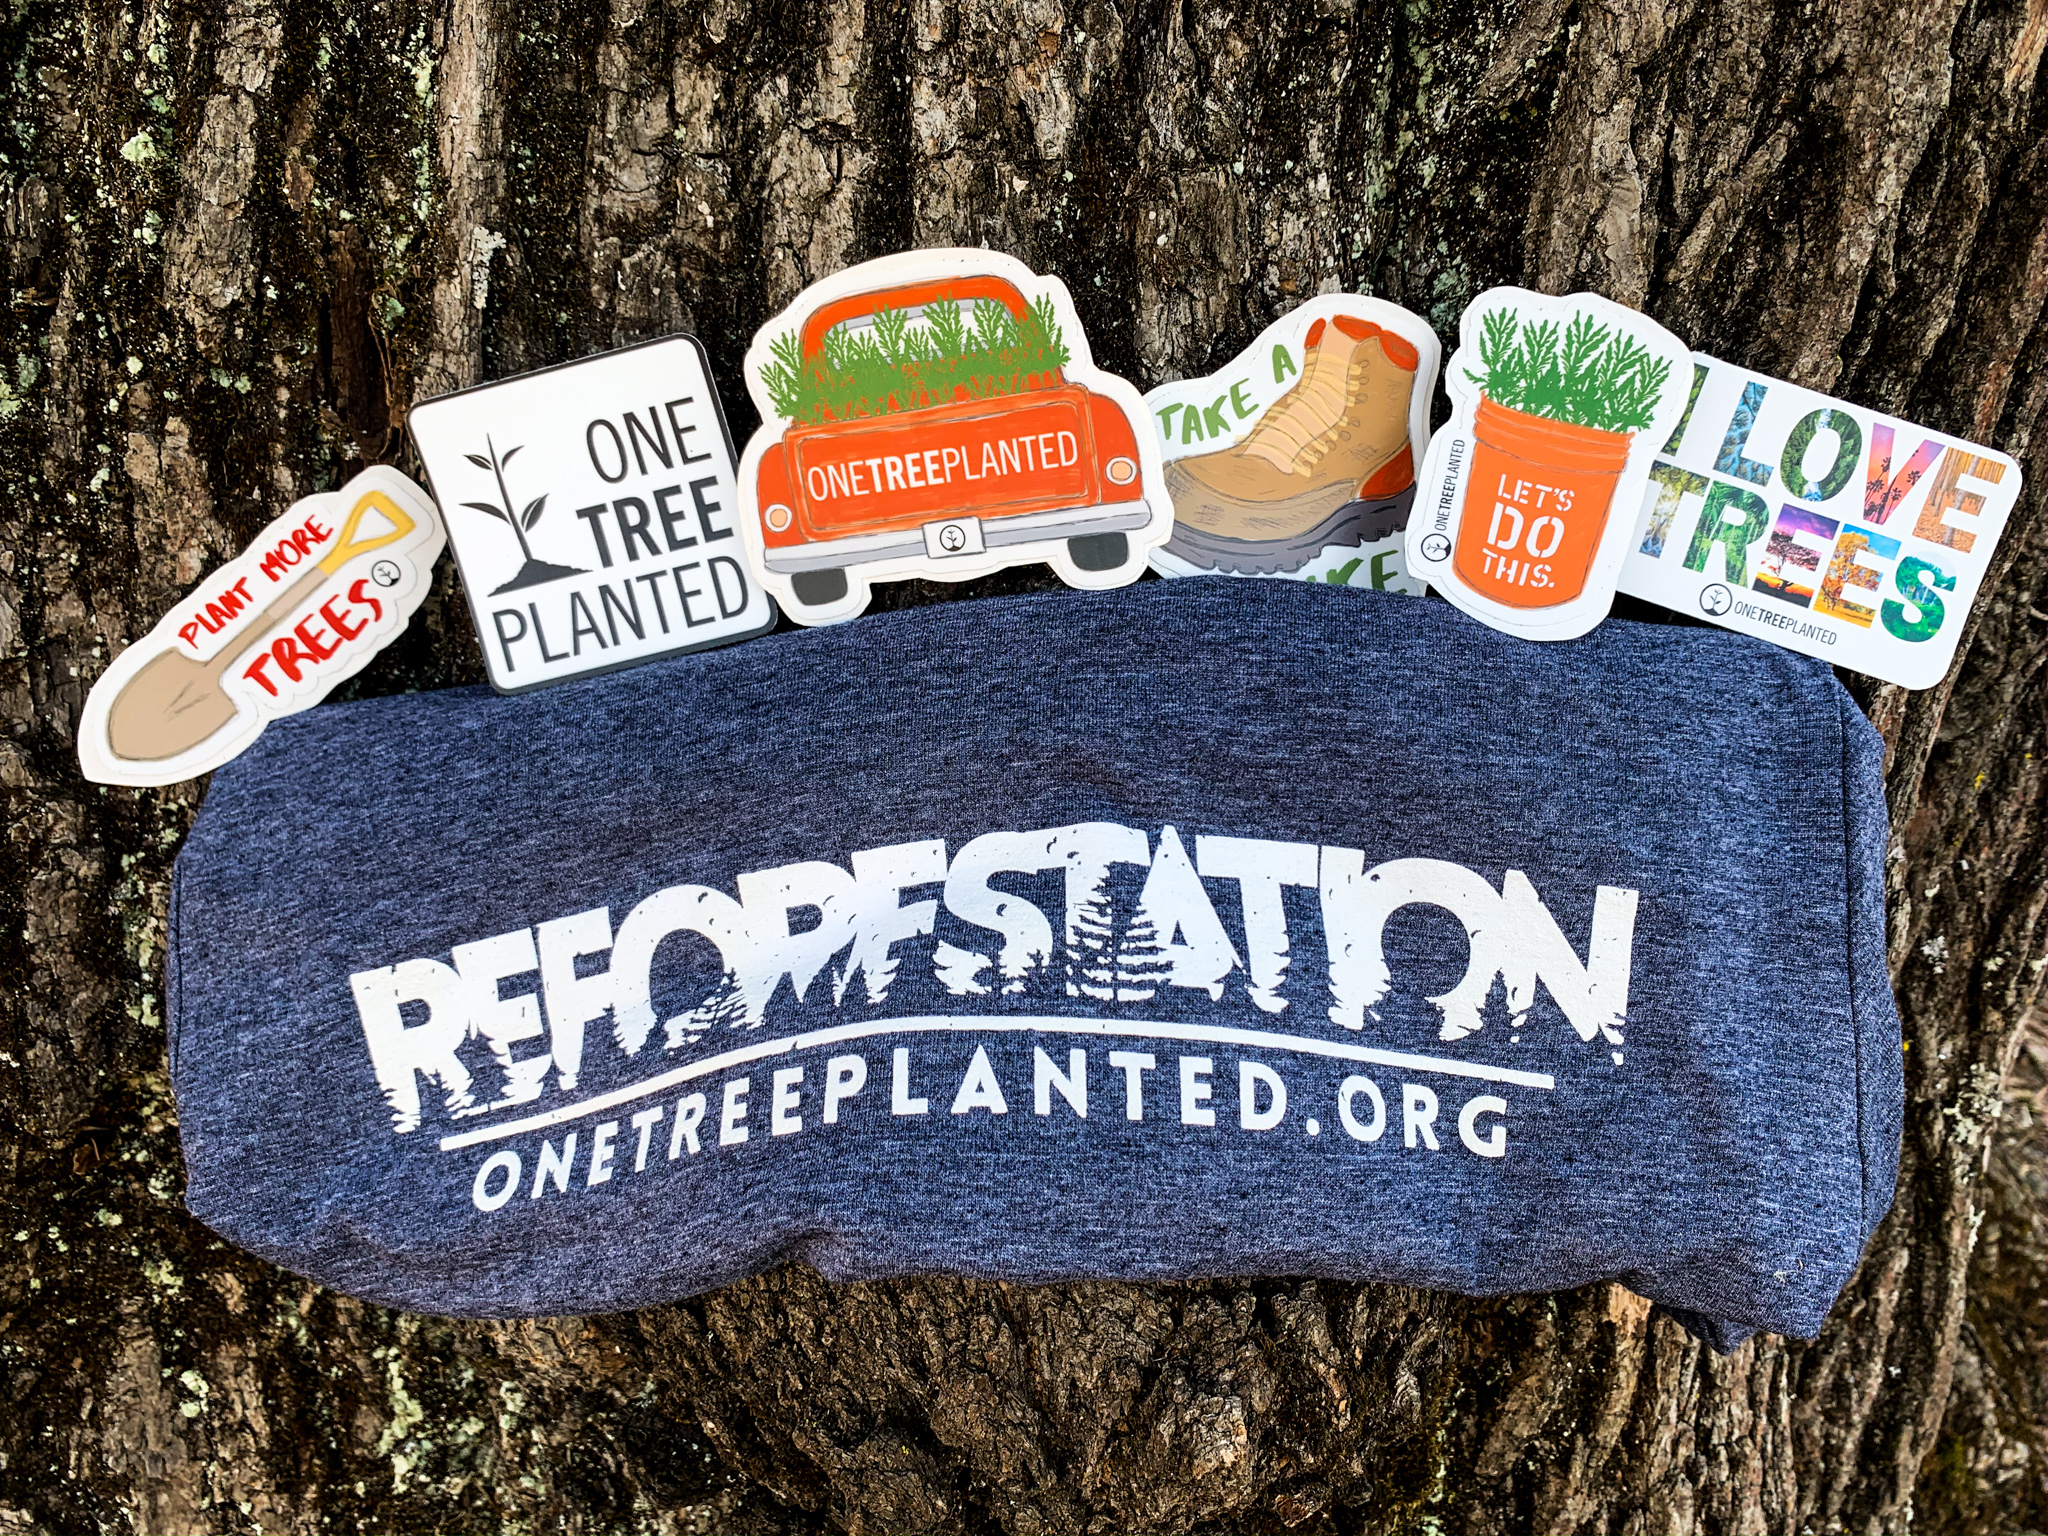 Trees with t-shirts and stickers